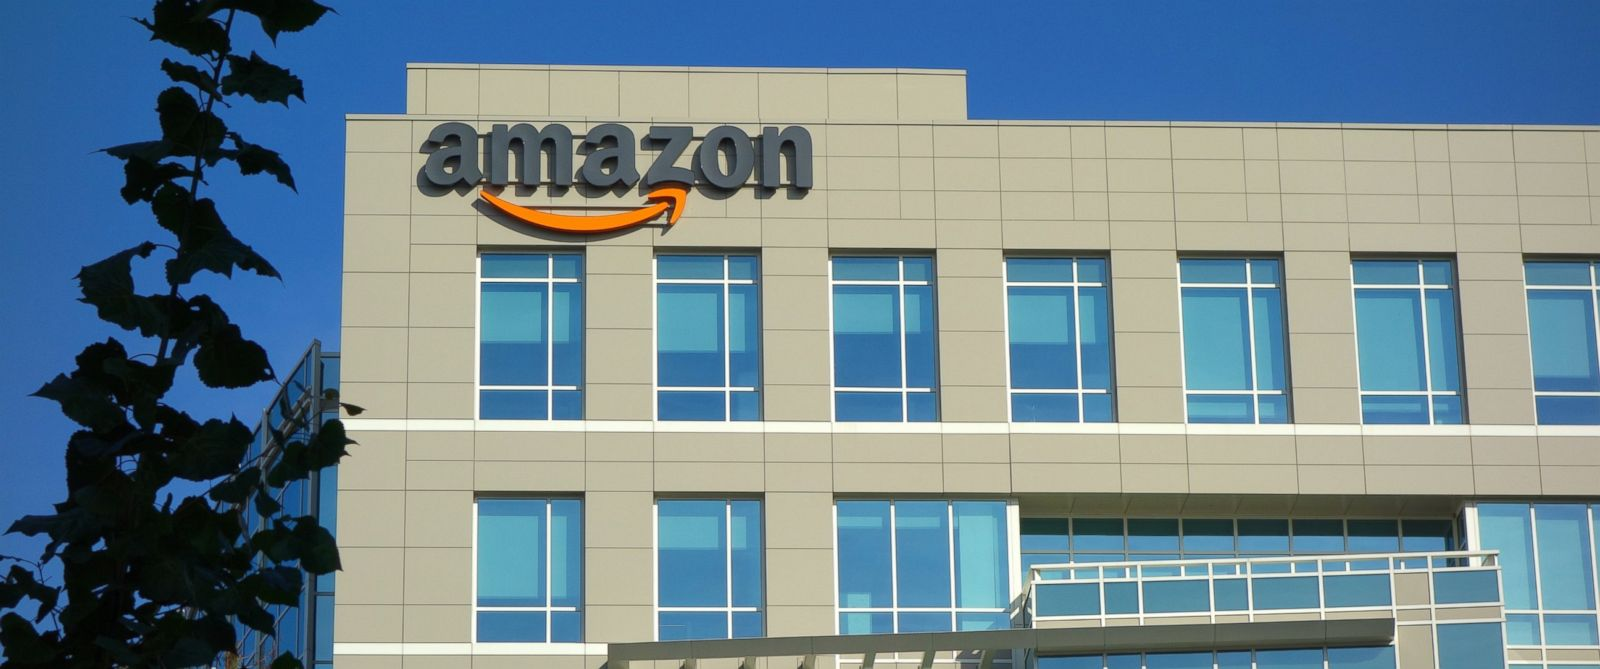 PHOTO: Amazon corporate office building in Sunnyvale, California, Nov. 8, 2014.